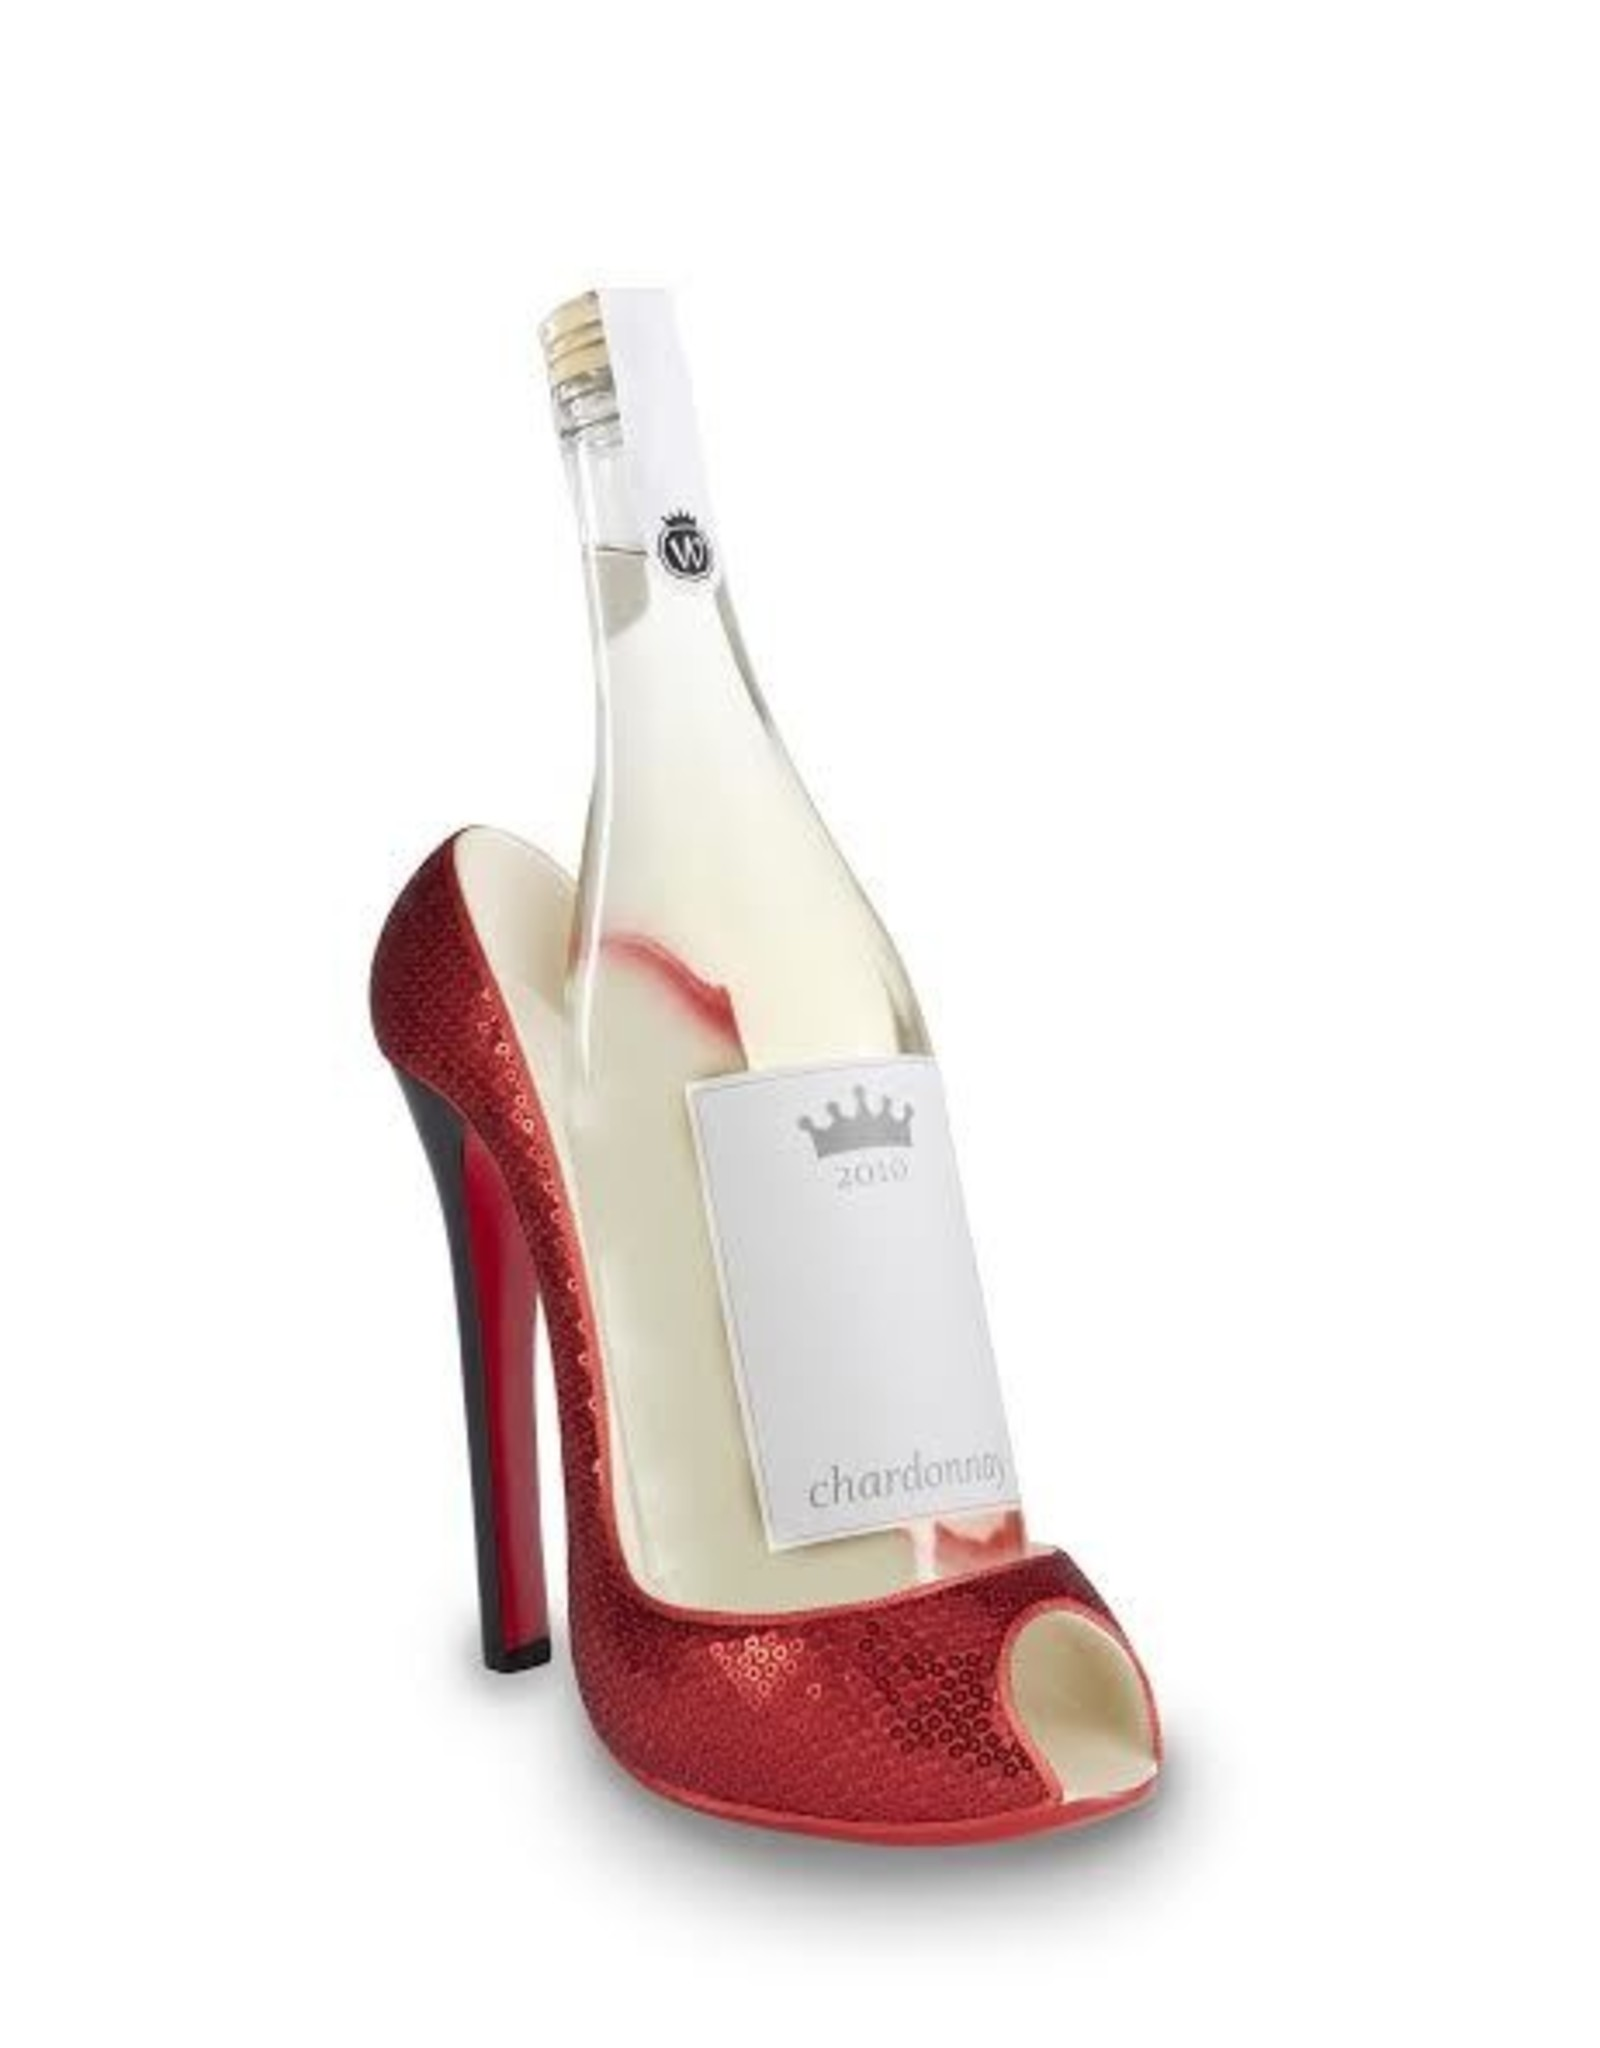 Wild Eye Stiletto Wine Holder - Red Glitter